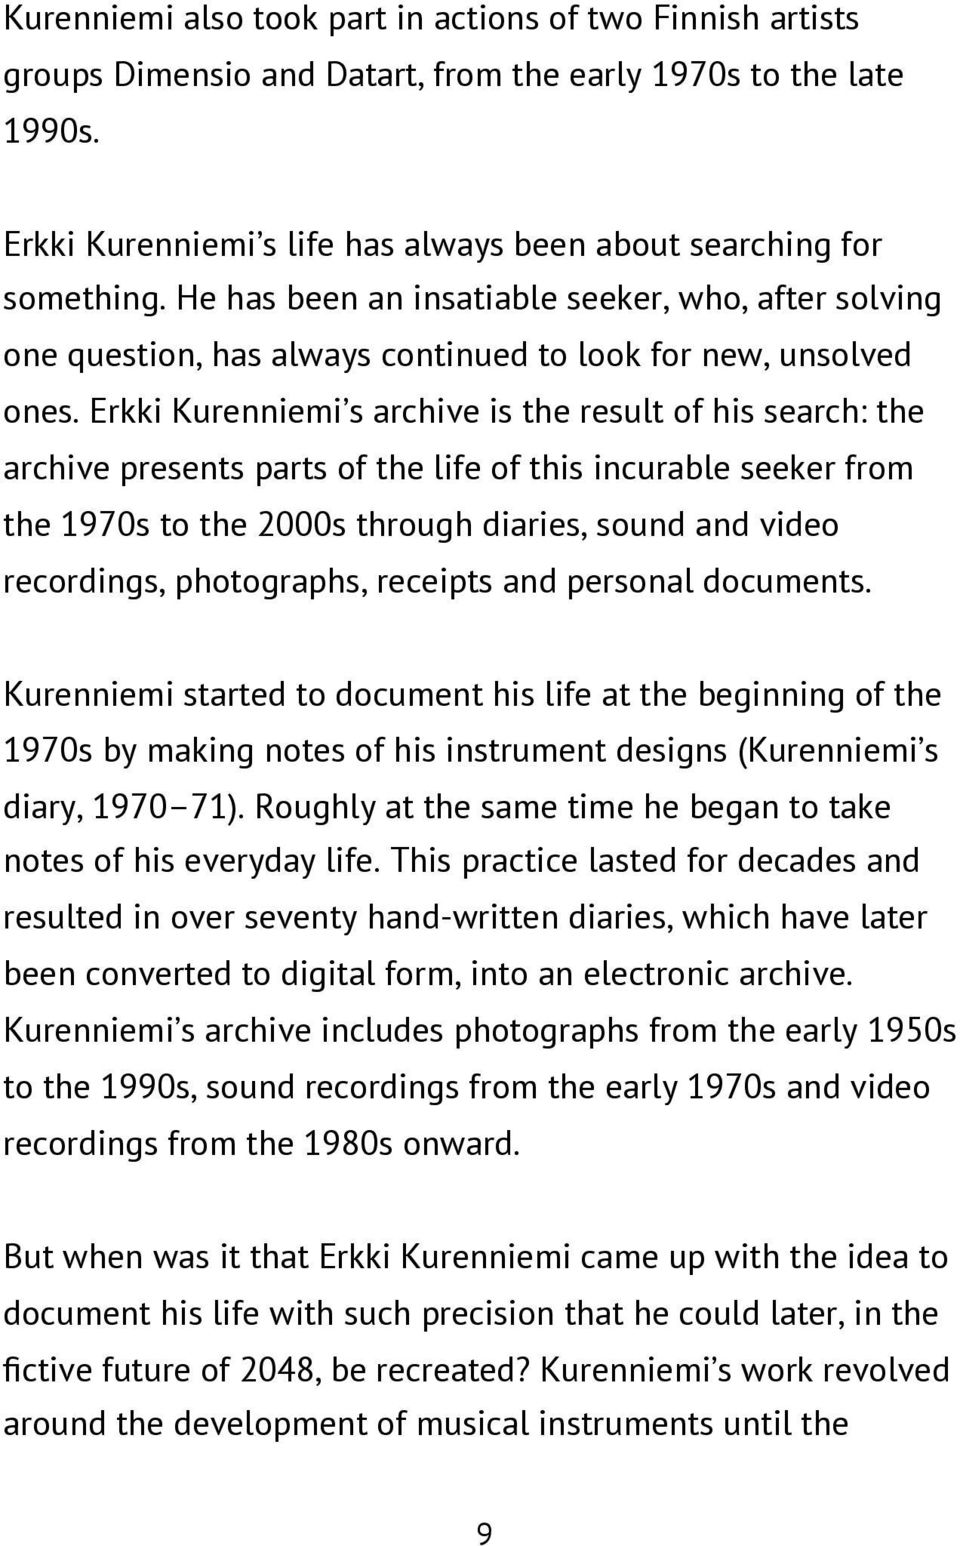 Erkki Kurenniemi s archive is the result of his search: the archive presents parts of the life of this incurable seeker from the 1970s to the 2000s through diaries, sound and video recordings,